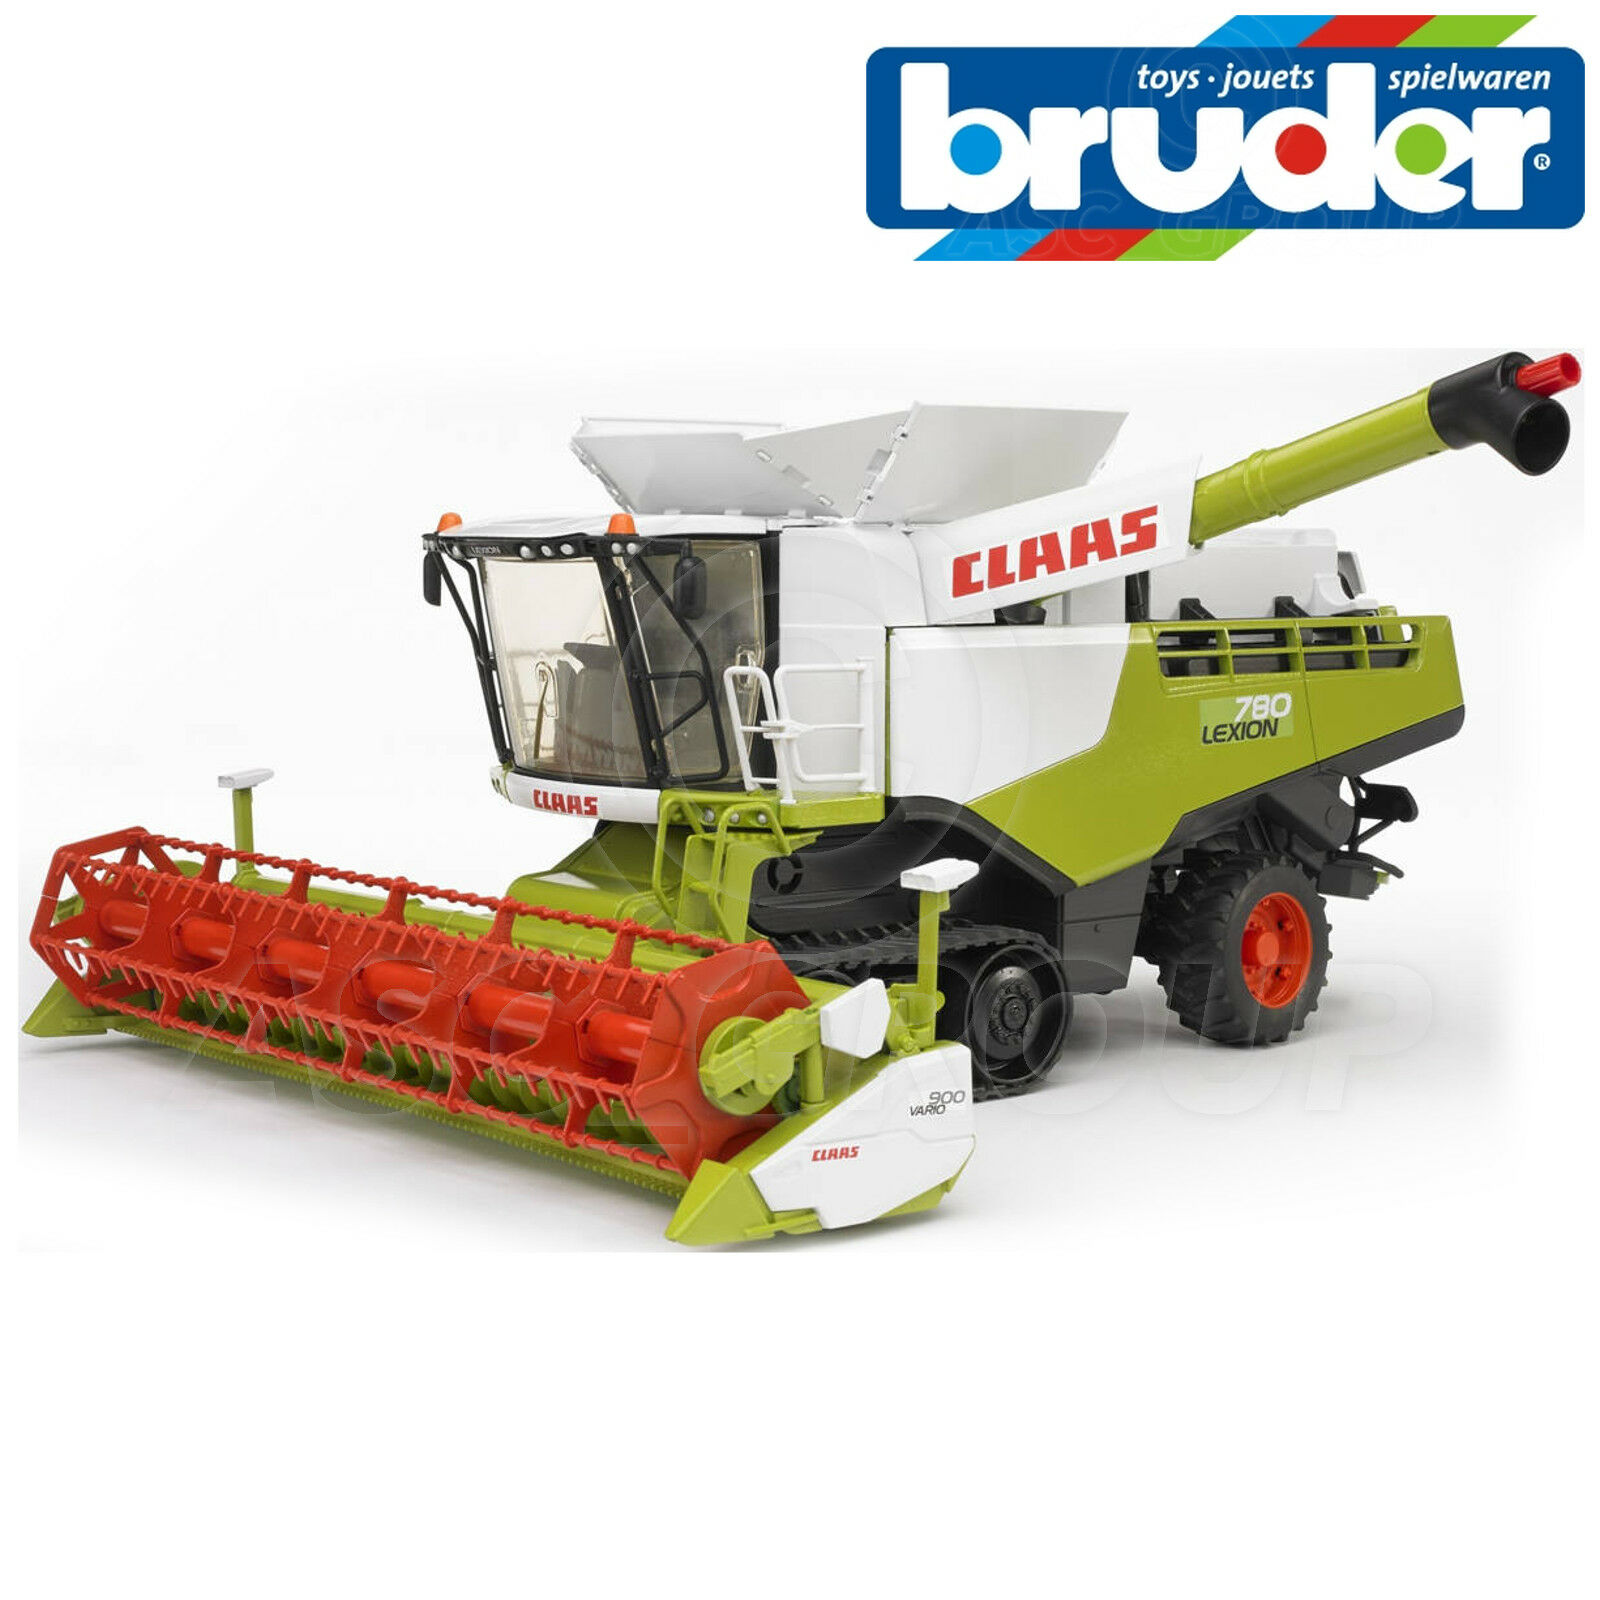 Bruder Toys 02119 CLAAS LEXION Terra Trac Combine Harvester 1 16 Scale Toy Model